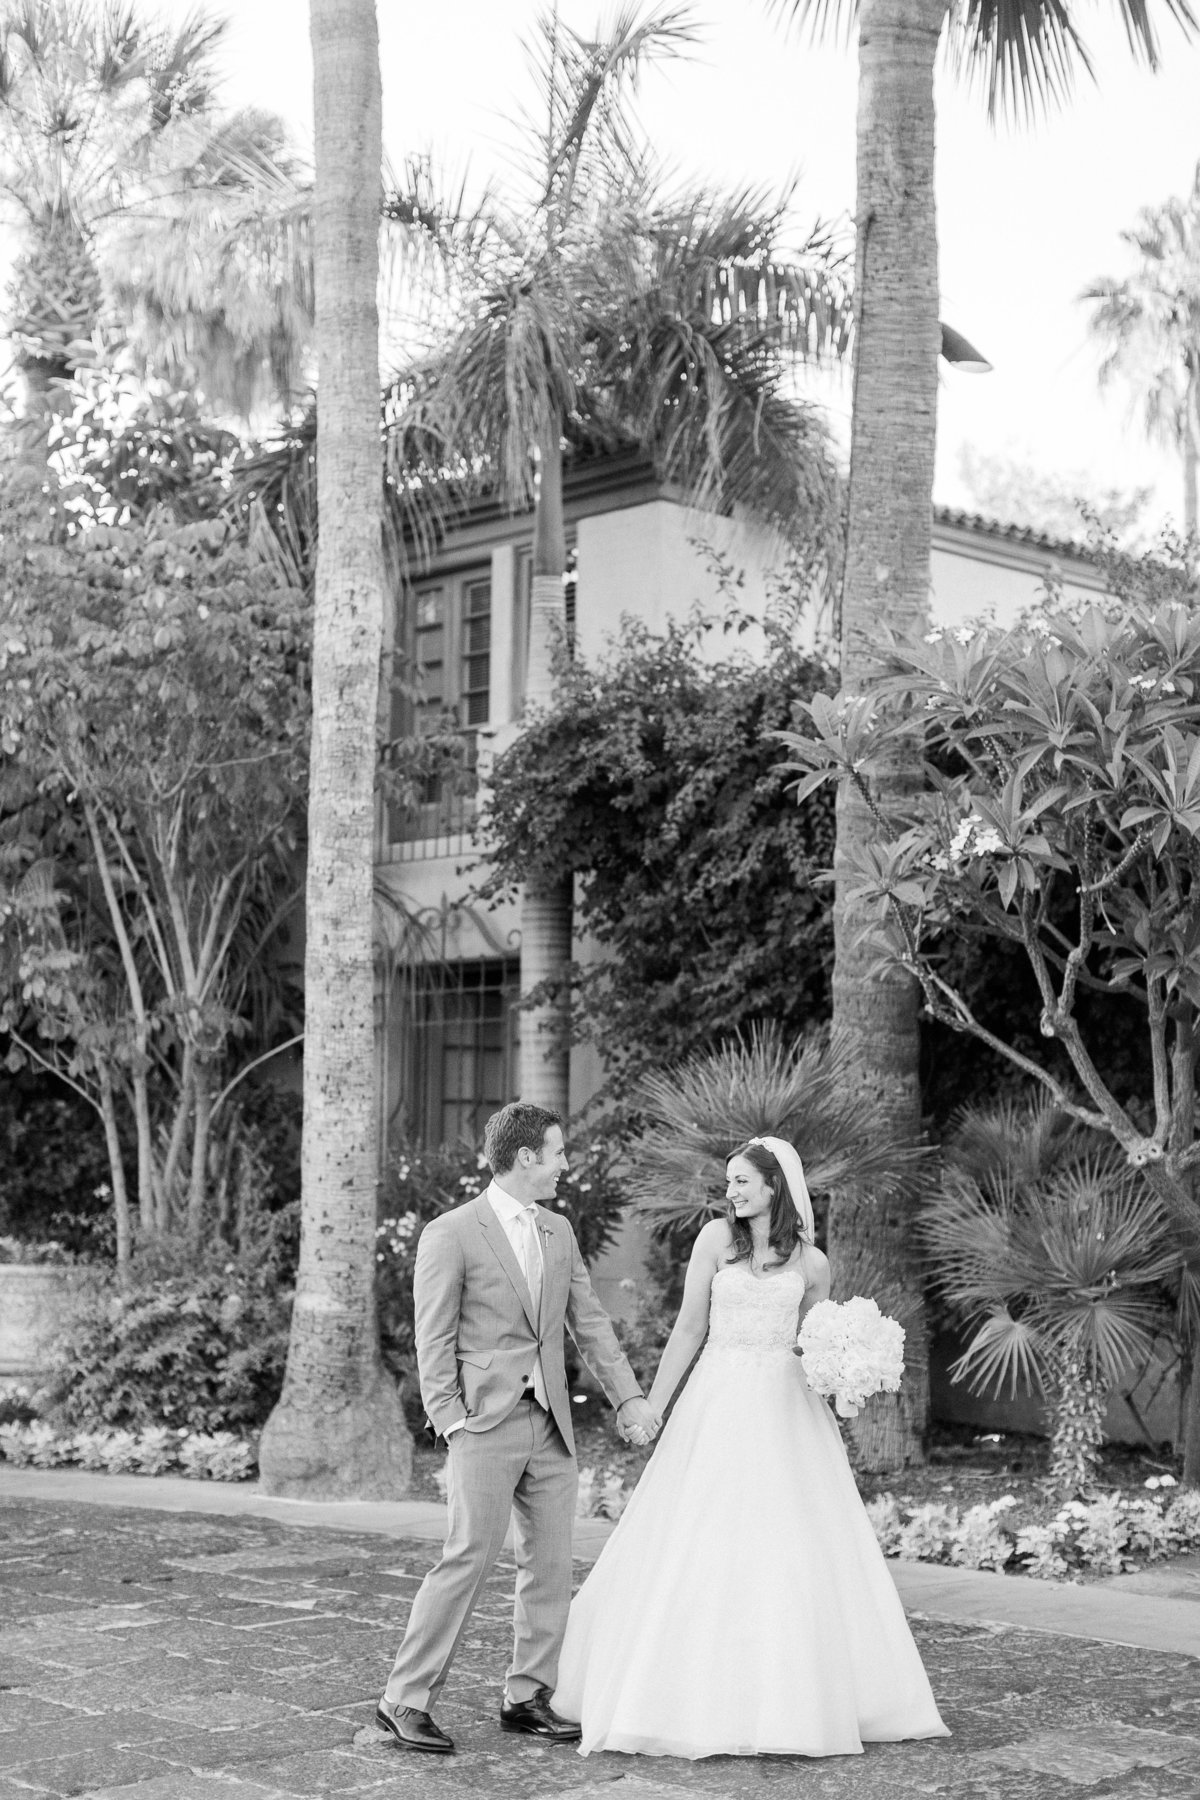 Imoni-Events-Elyse-Hall-Royal-Palms-129-6669